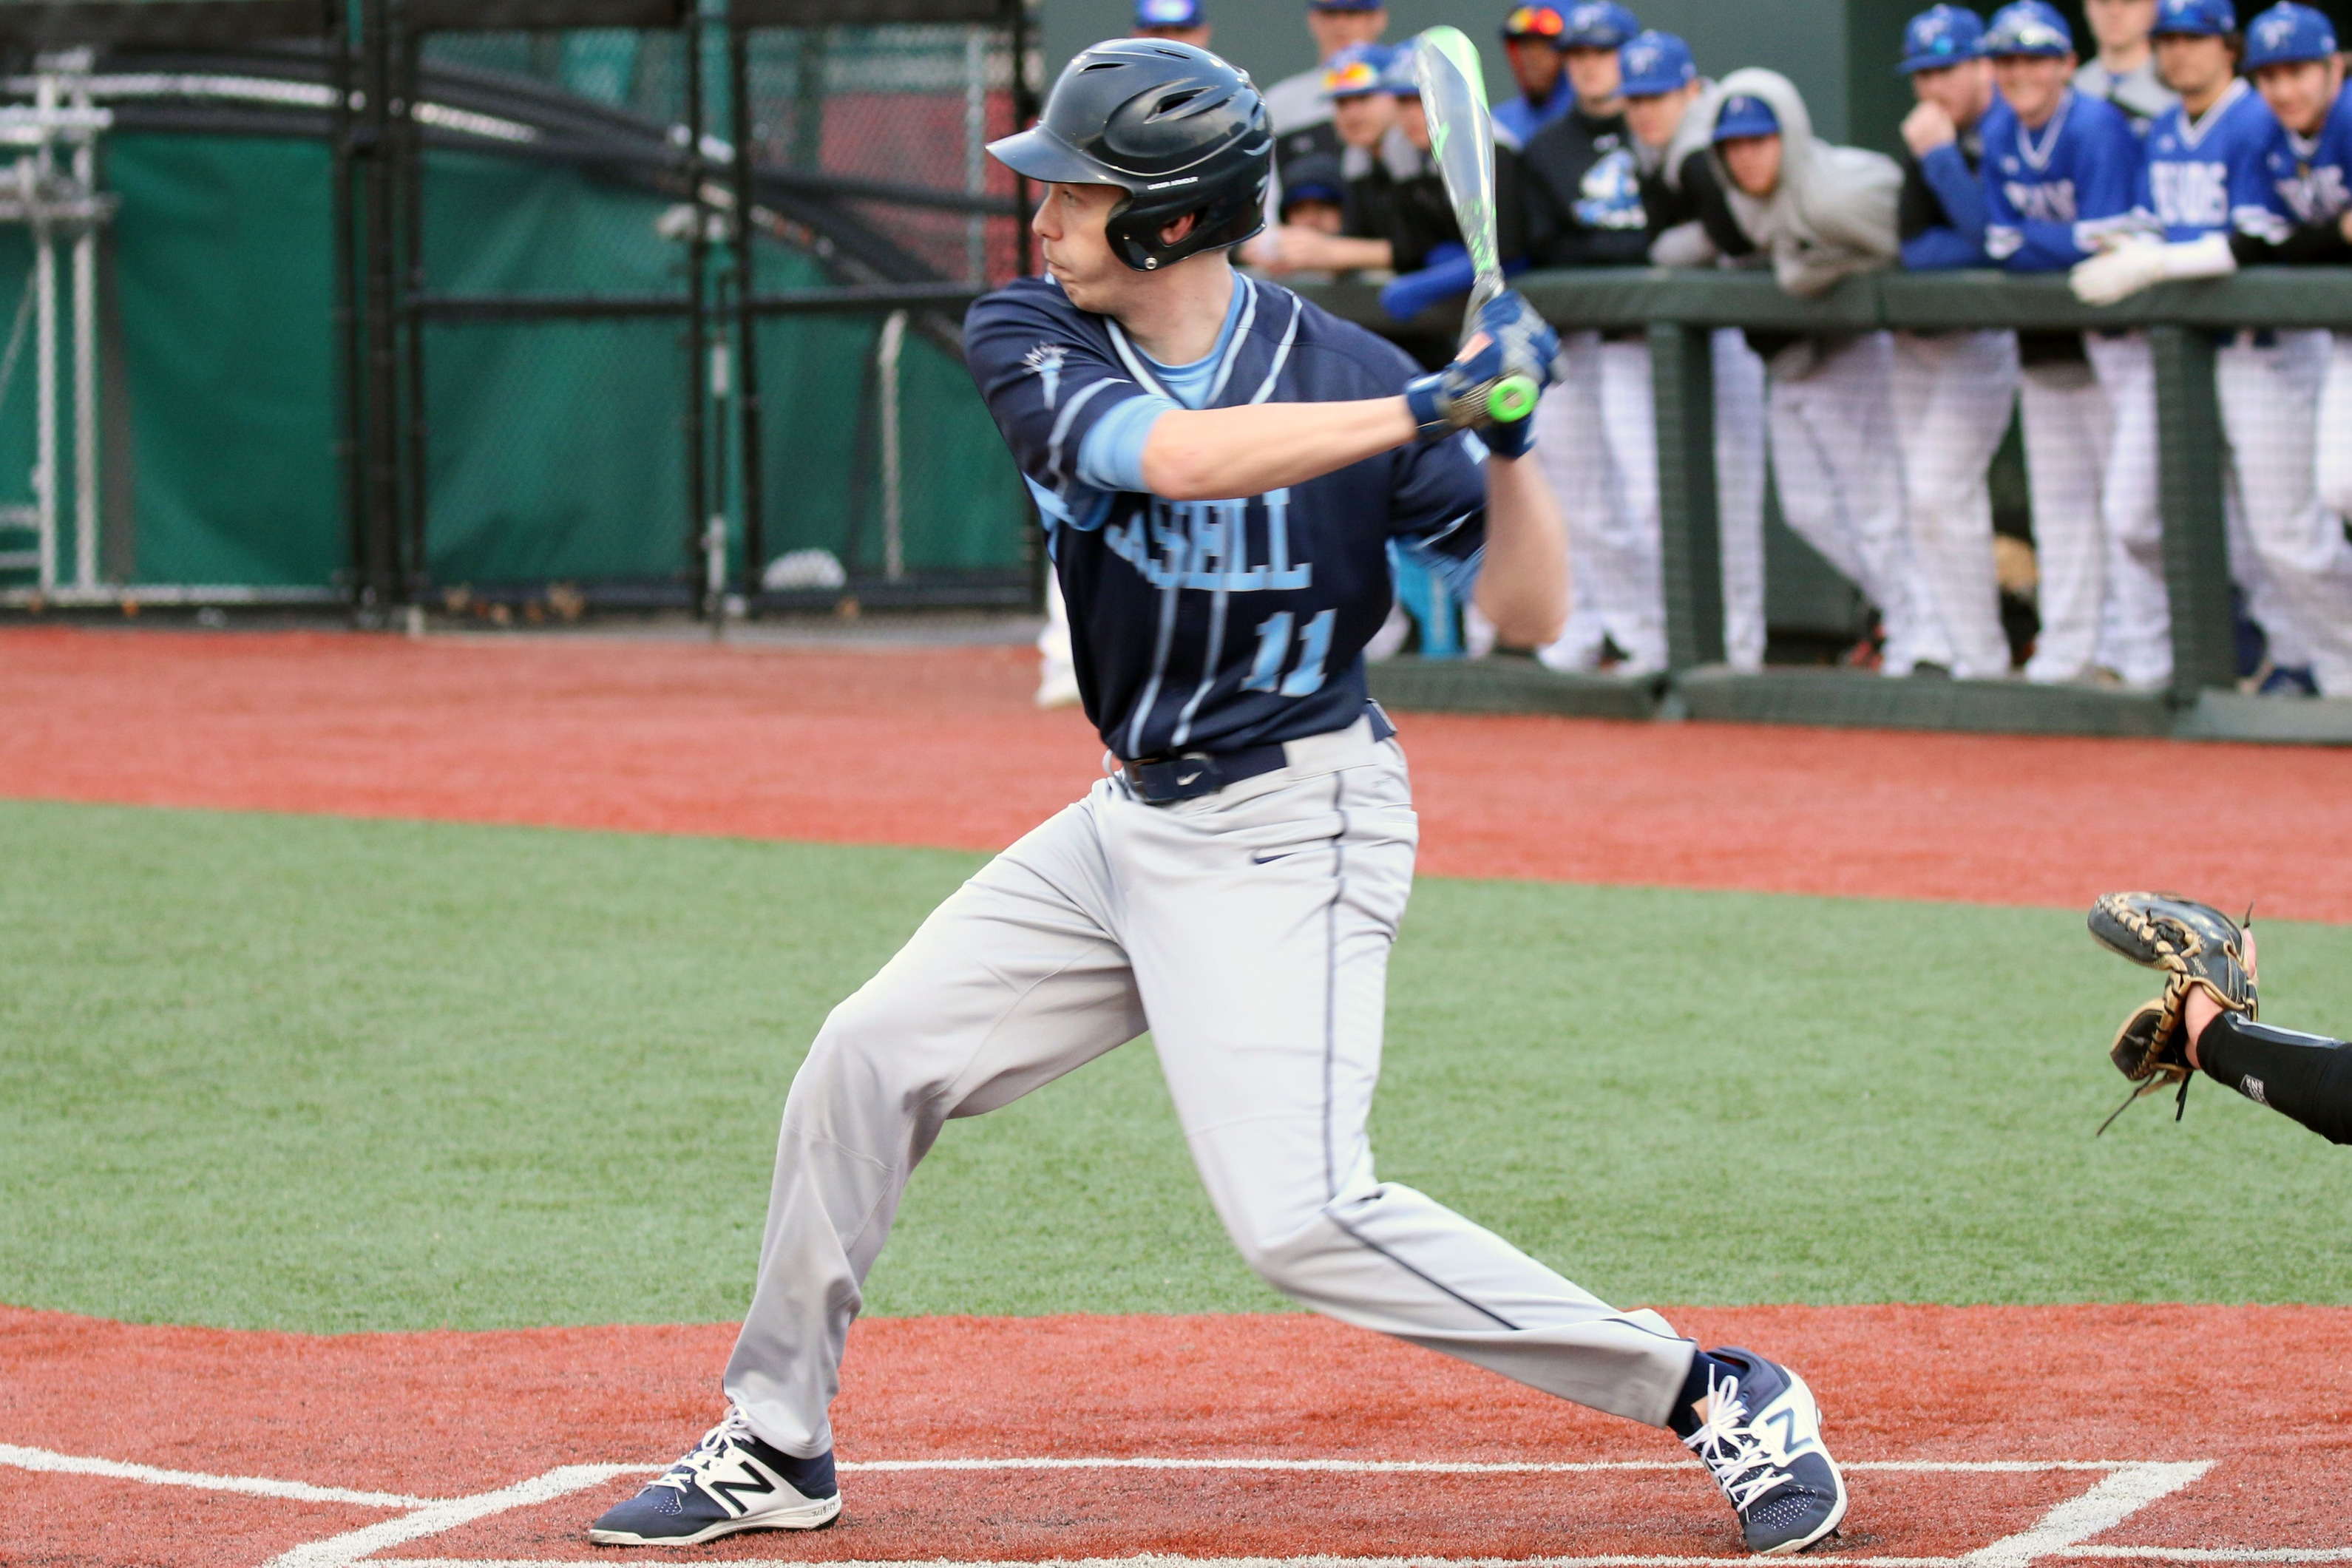 Lasell Baseball drops pair at St. Mary's (Md.)